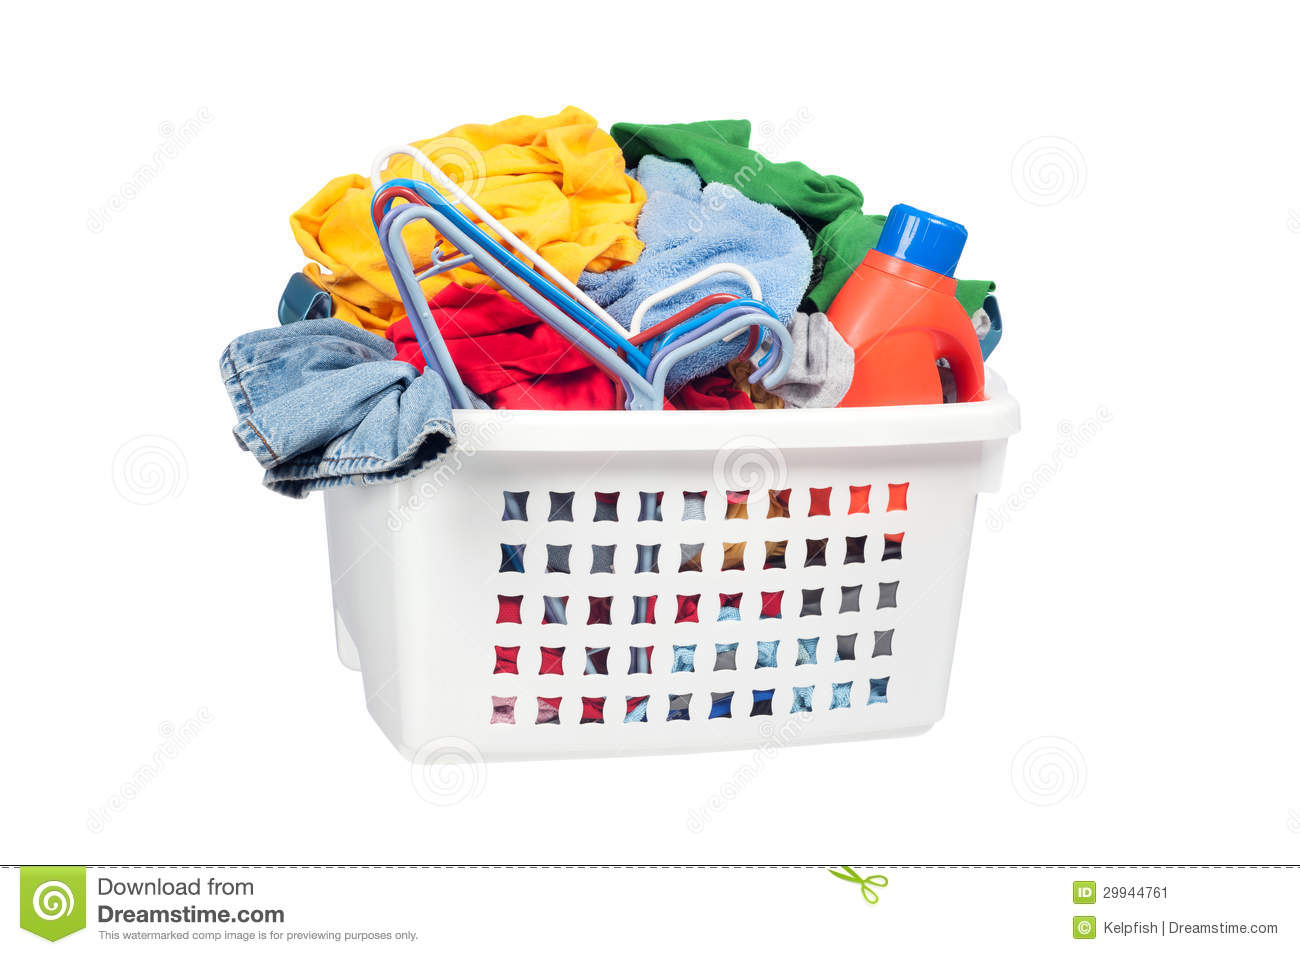 Clothing and laundry